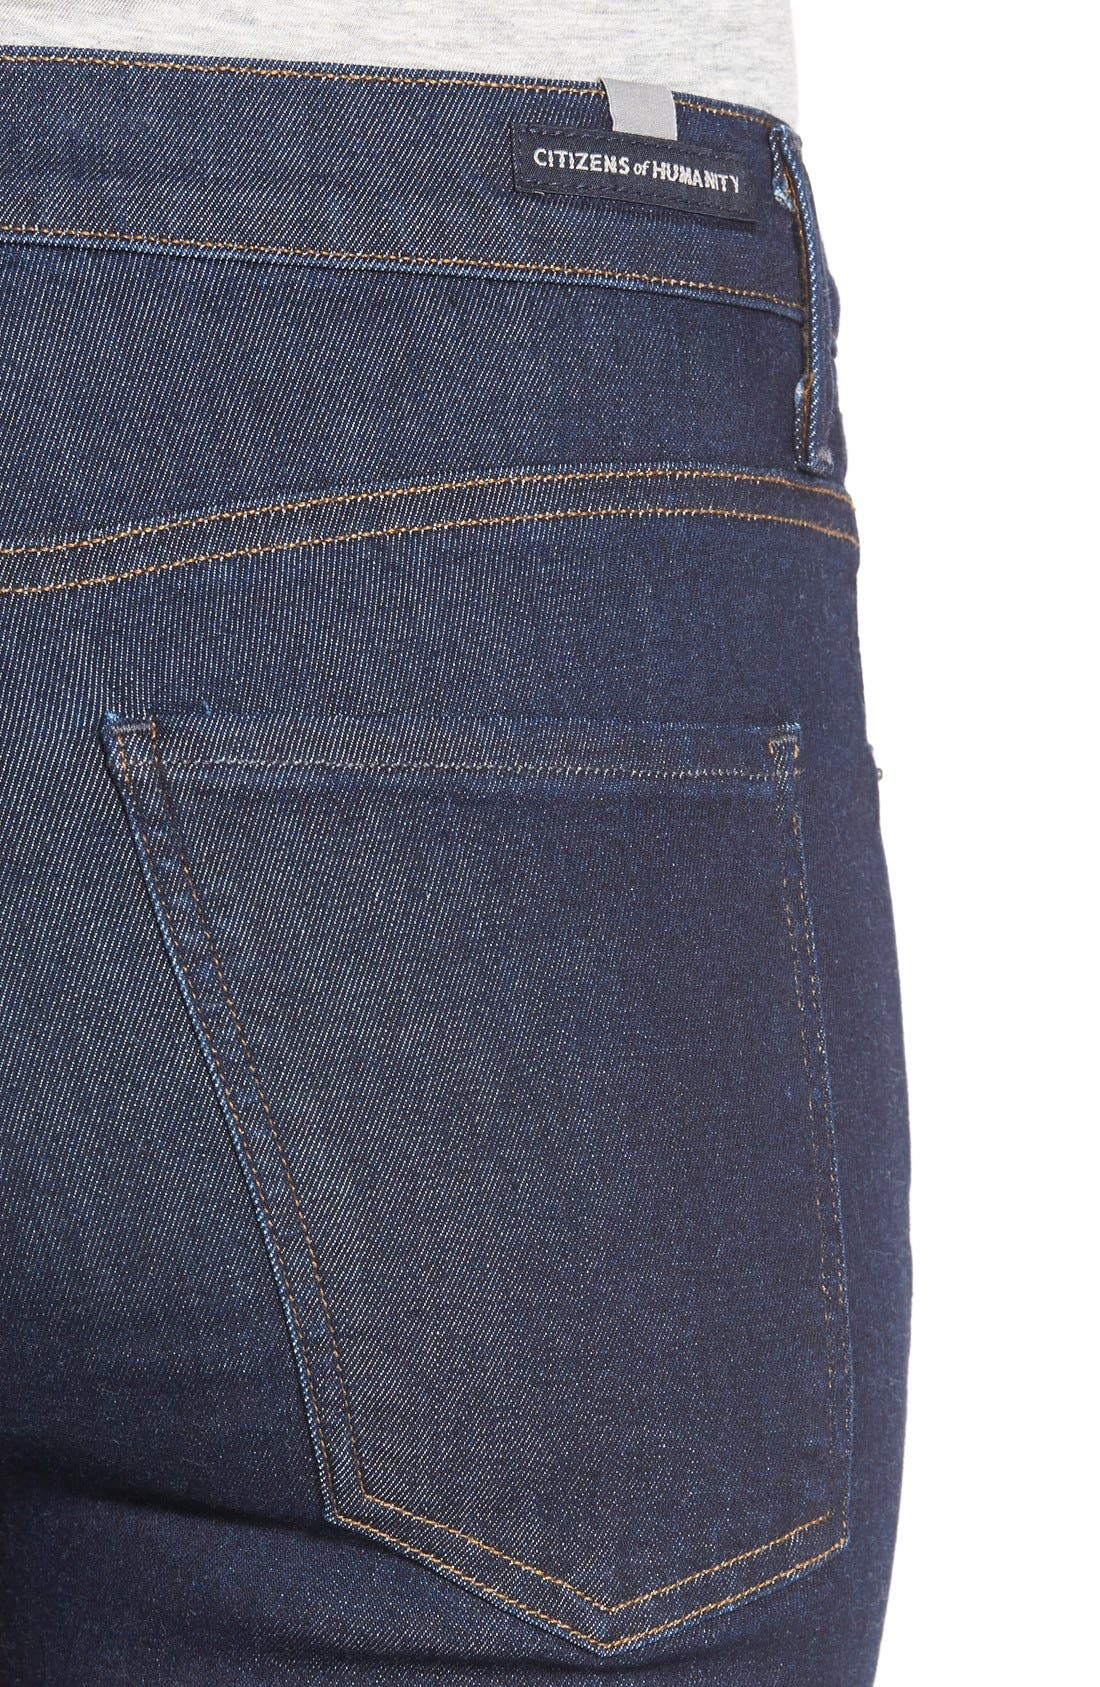 'Fleetwood' High Rise Flare Jeans,                             Alternate thumbnail 3, color,                             OZONE RINSE